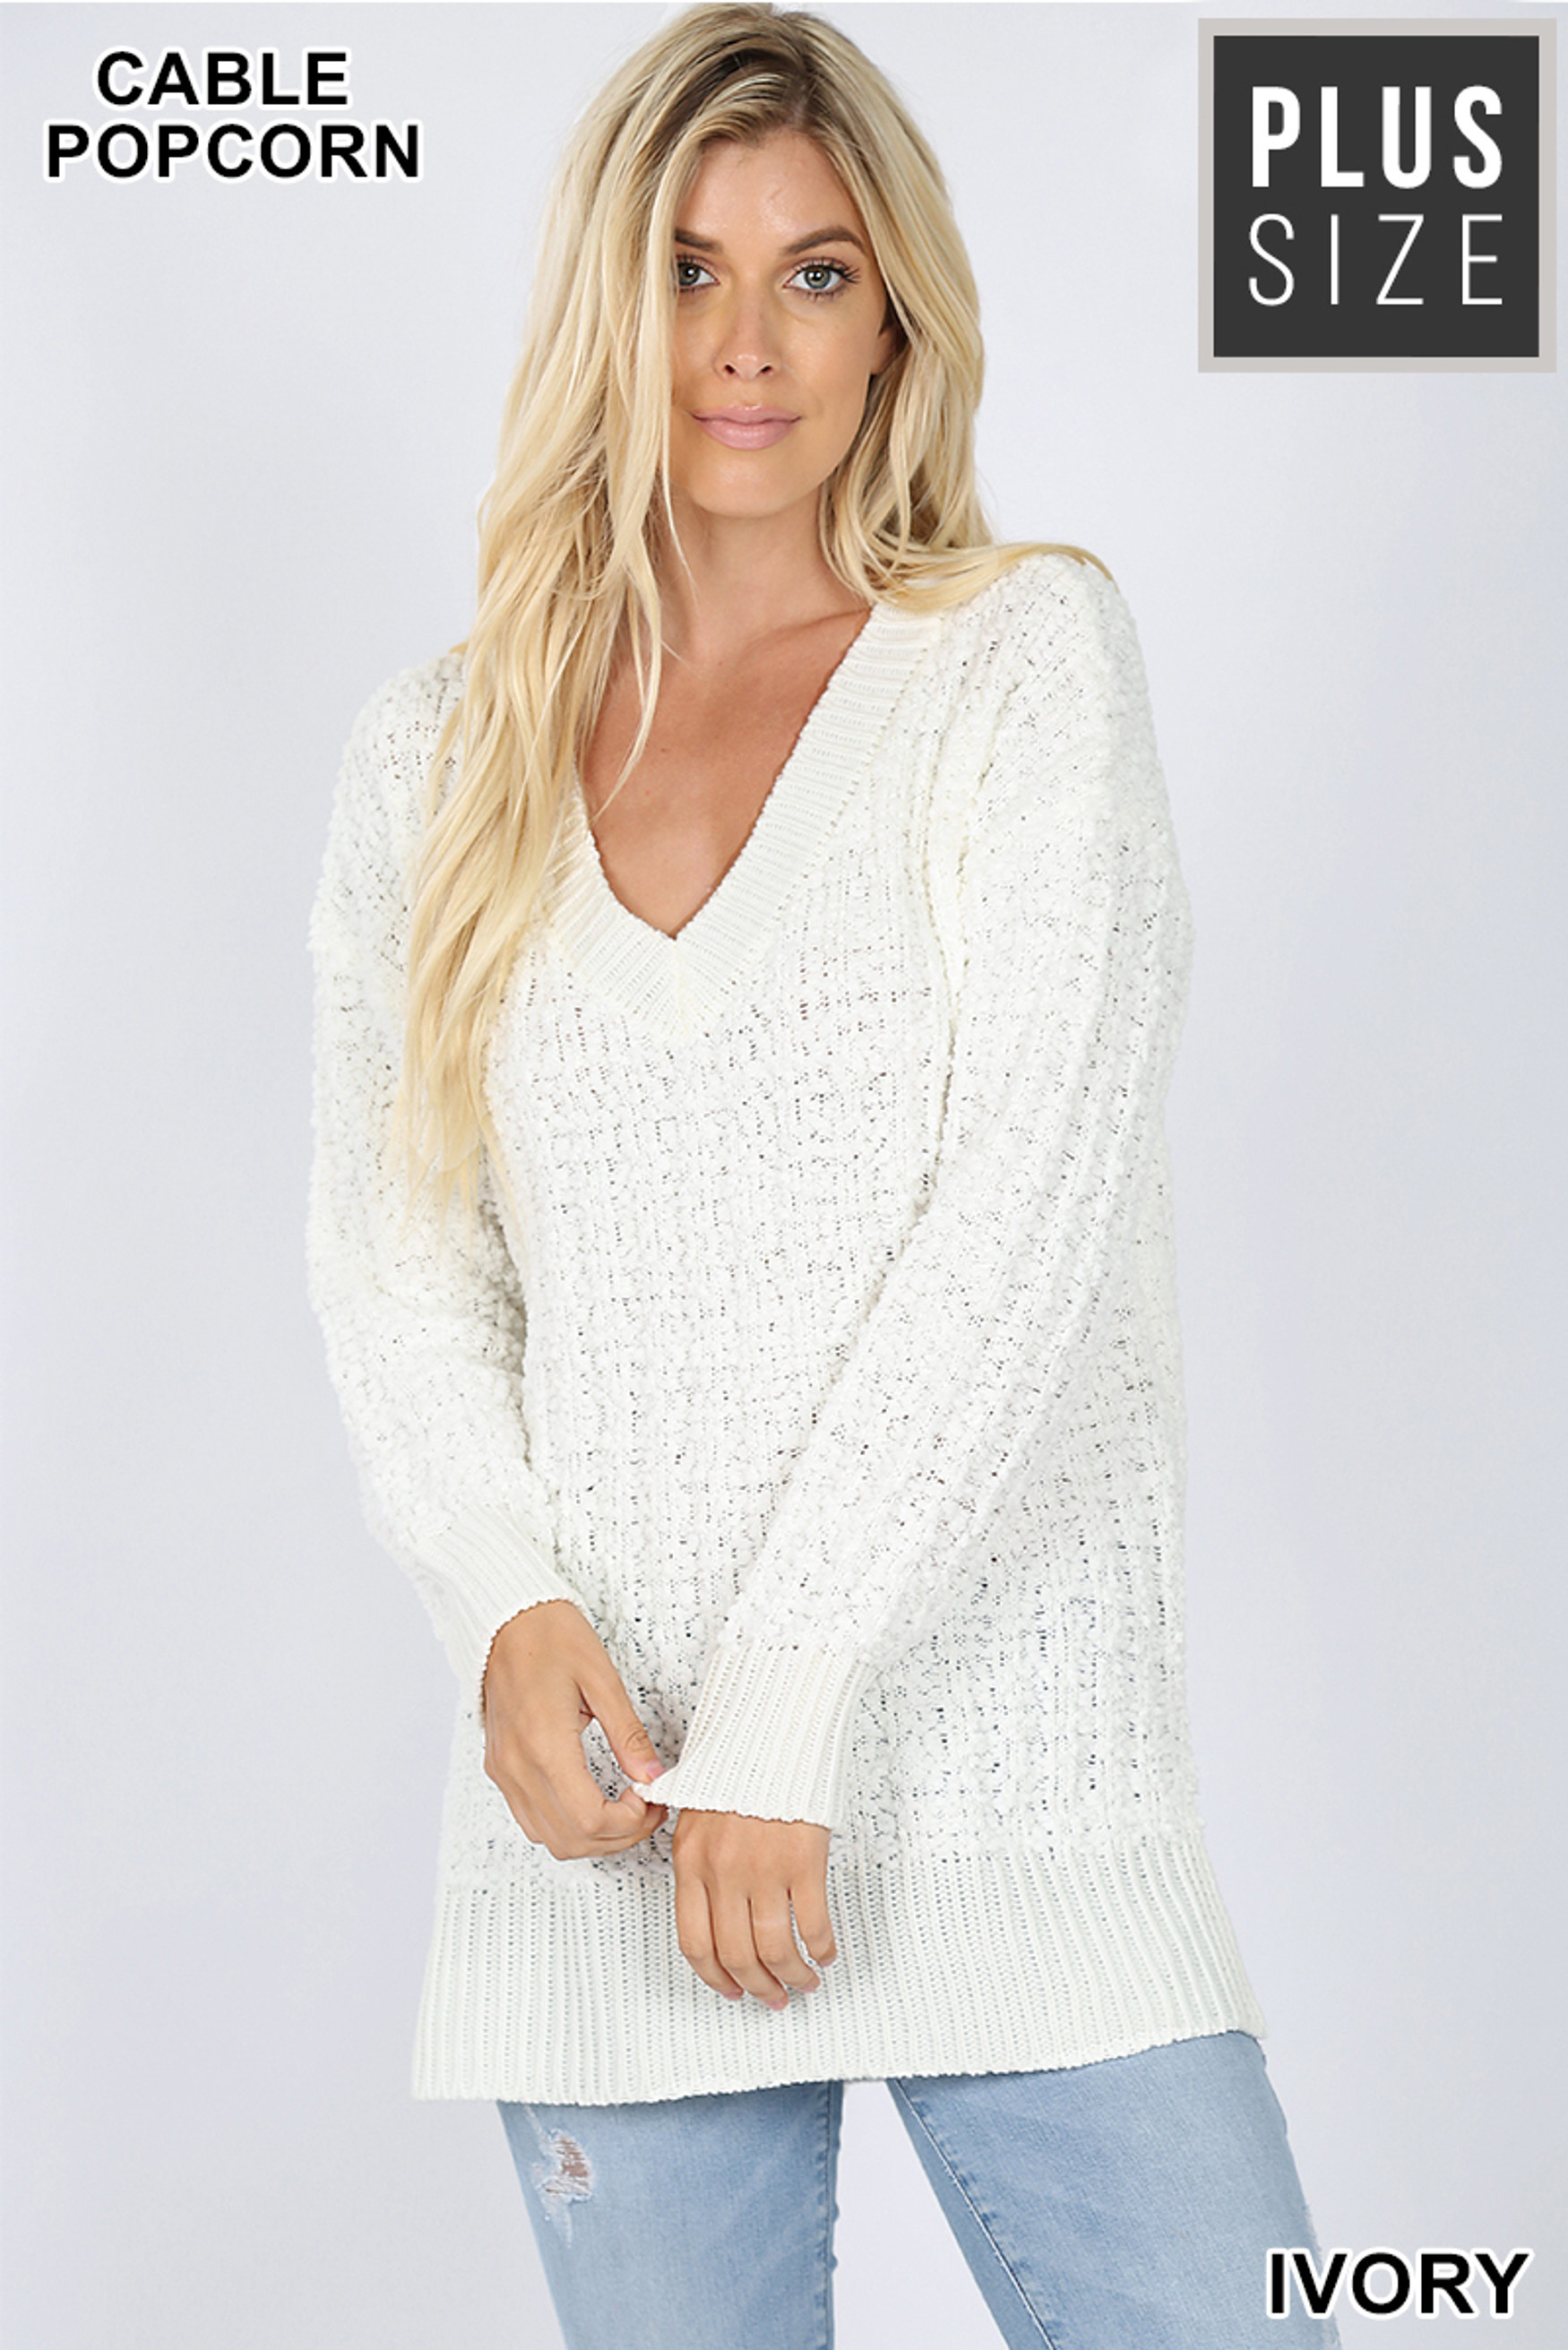 Front image of Ivory Cable Knit Popcorn V-Neck Hi-Low Plus Size Sweater